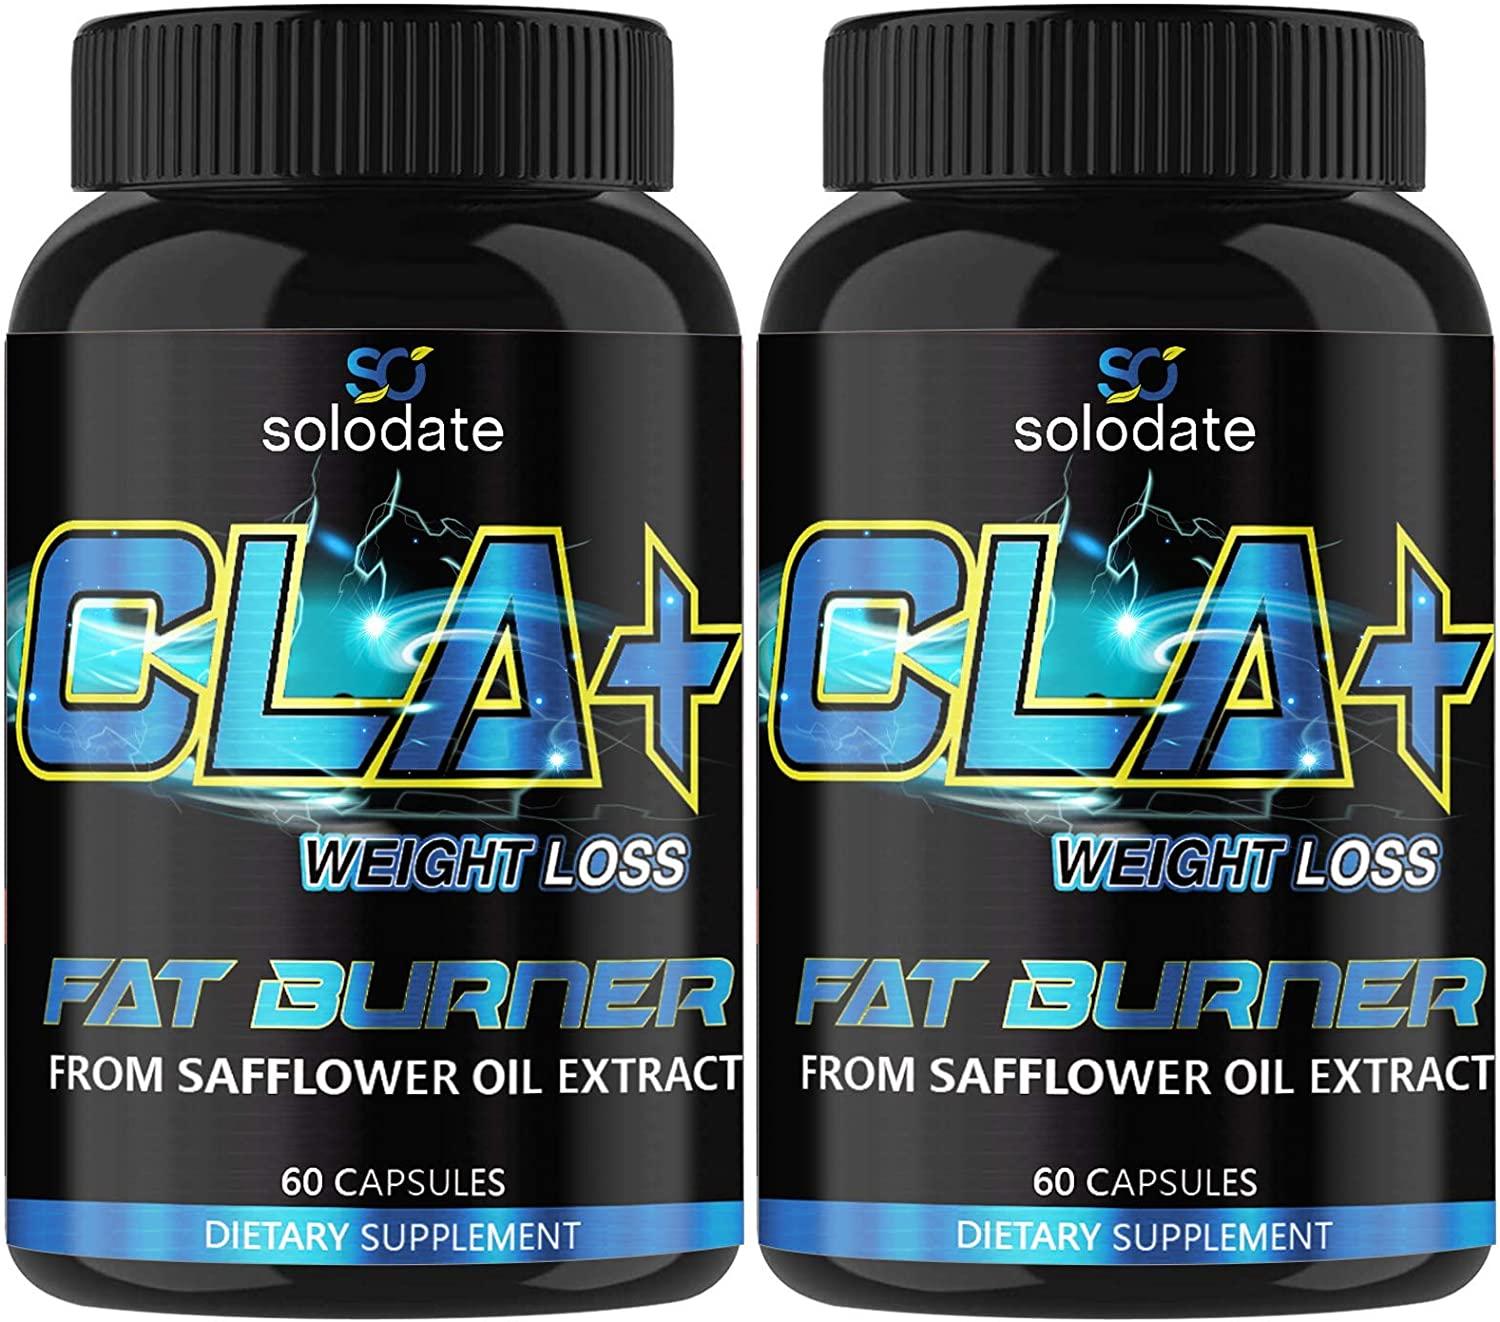 Purchase Pack of 2 CLA Save money 1250 Management Supplements for Healthy Weight